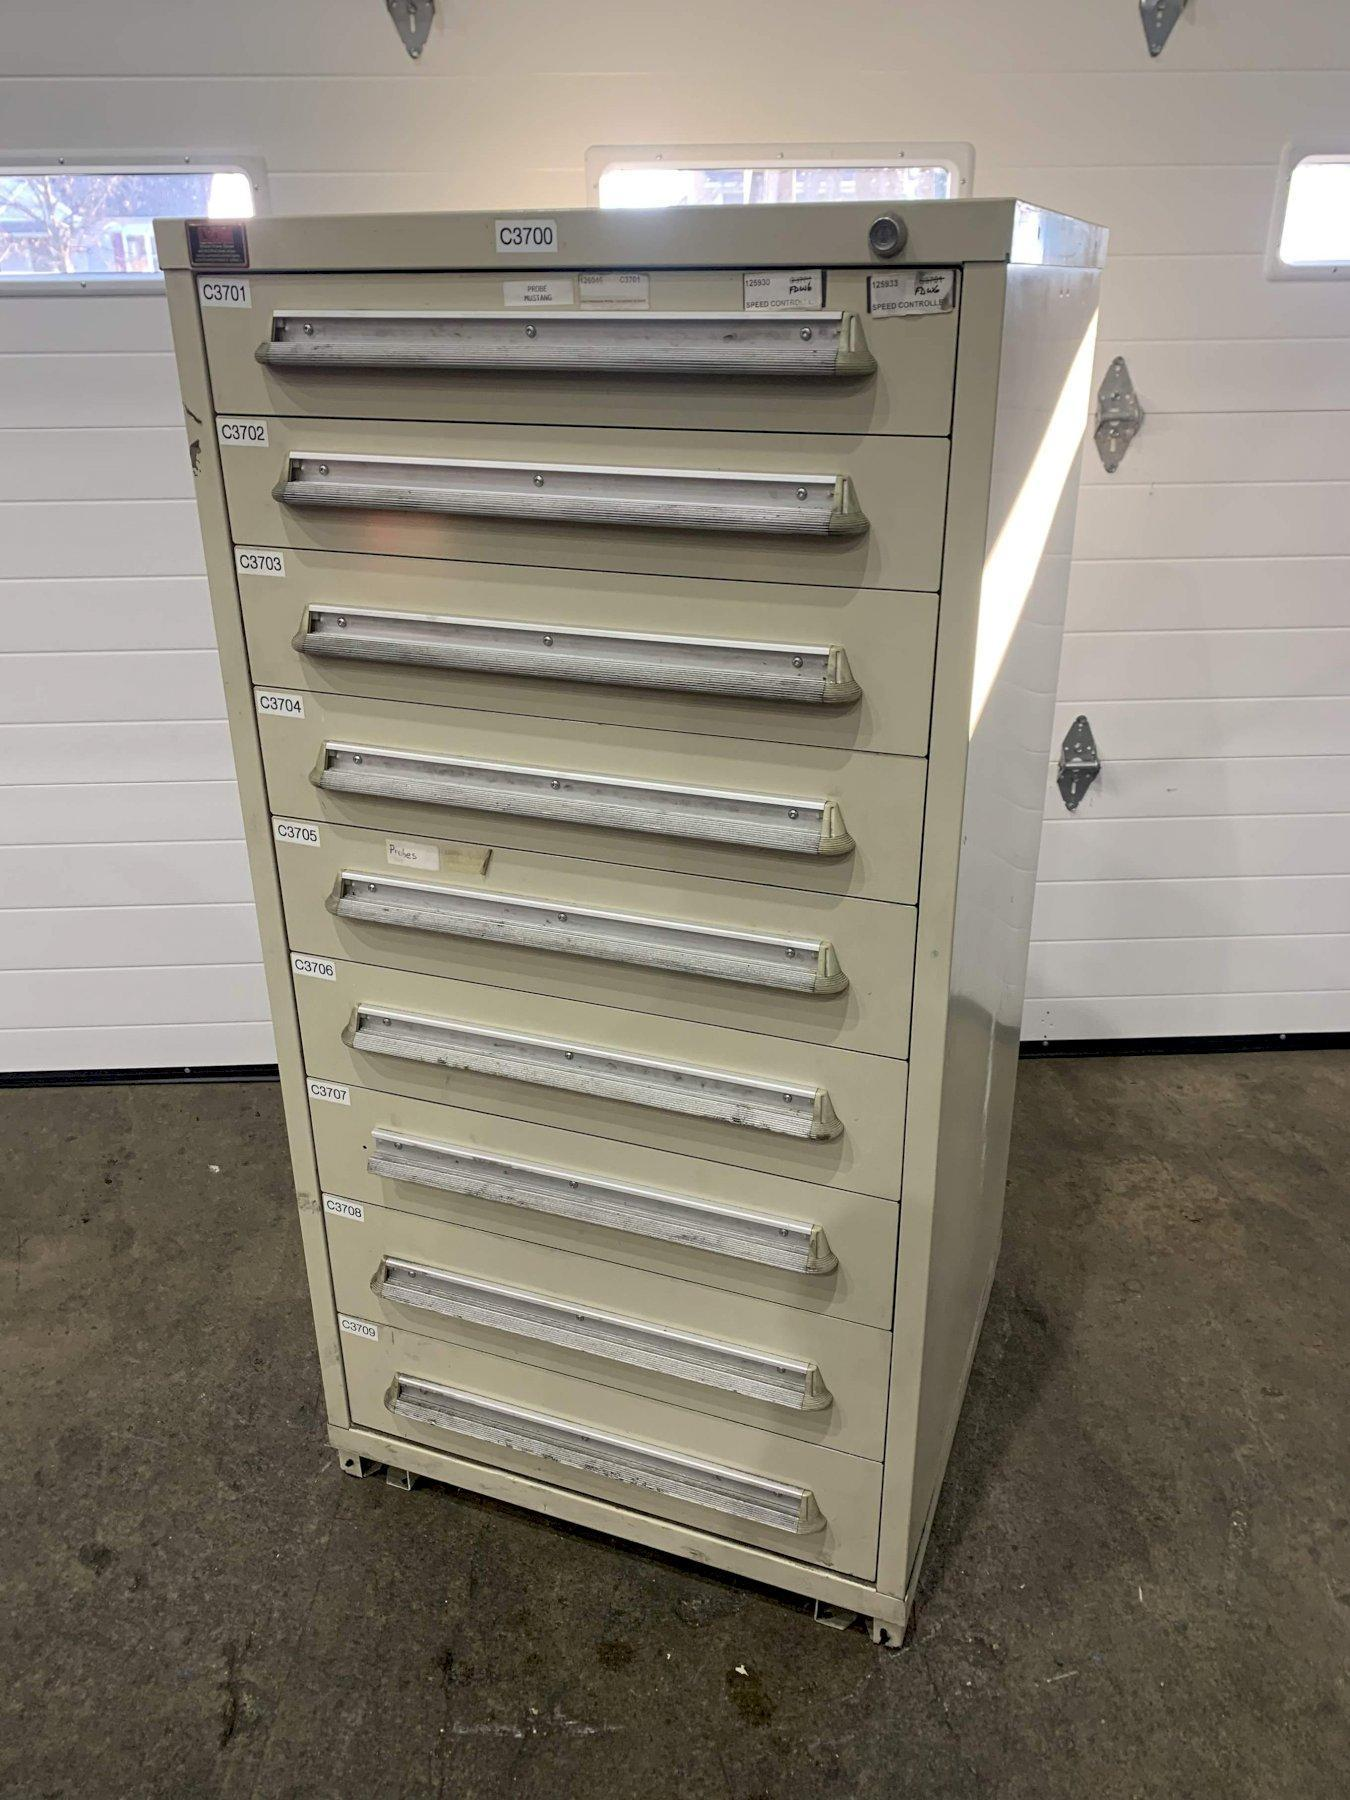 9 DRAWER LYON CABINET: STOCK #73710